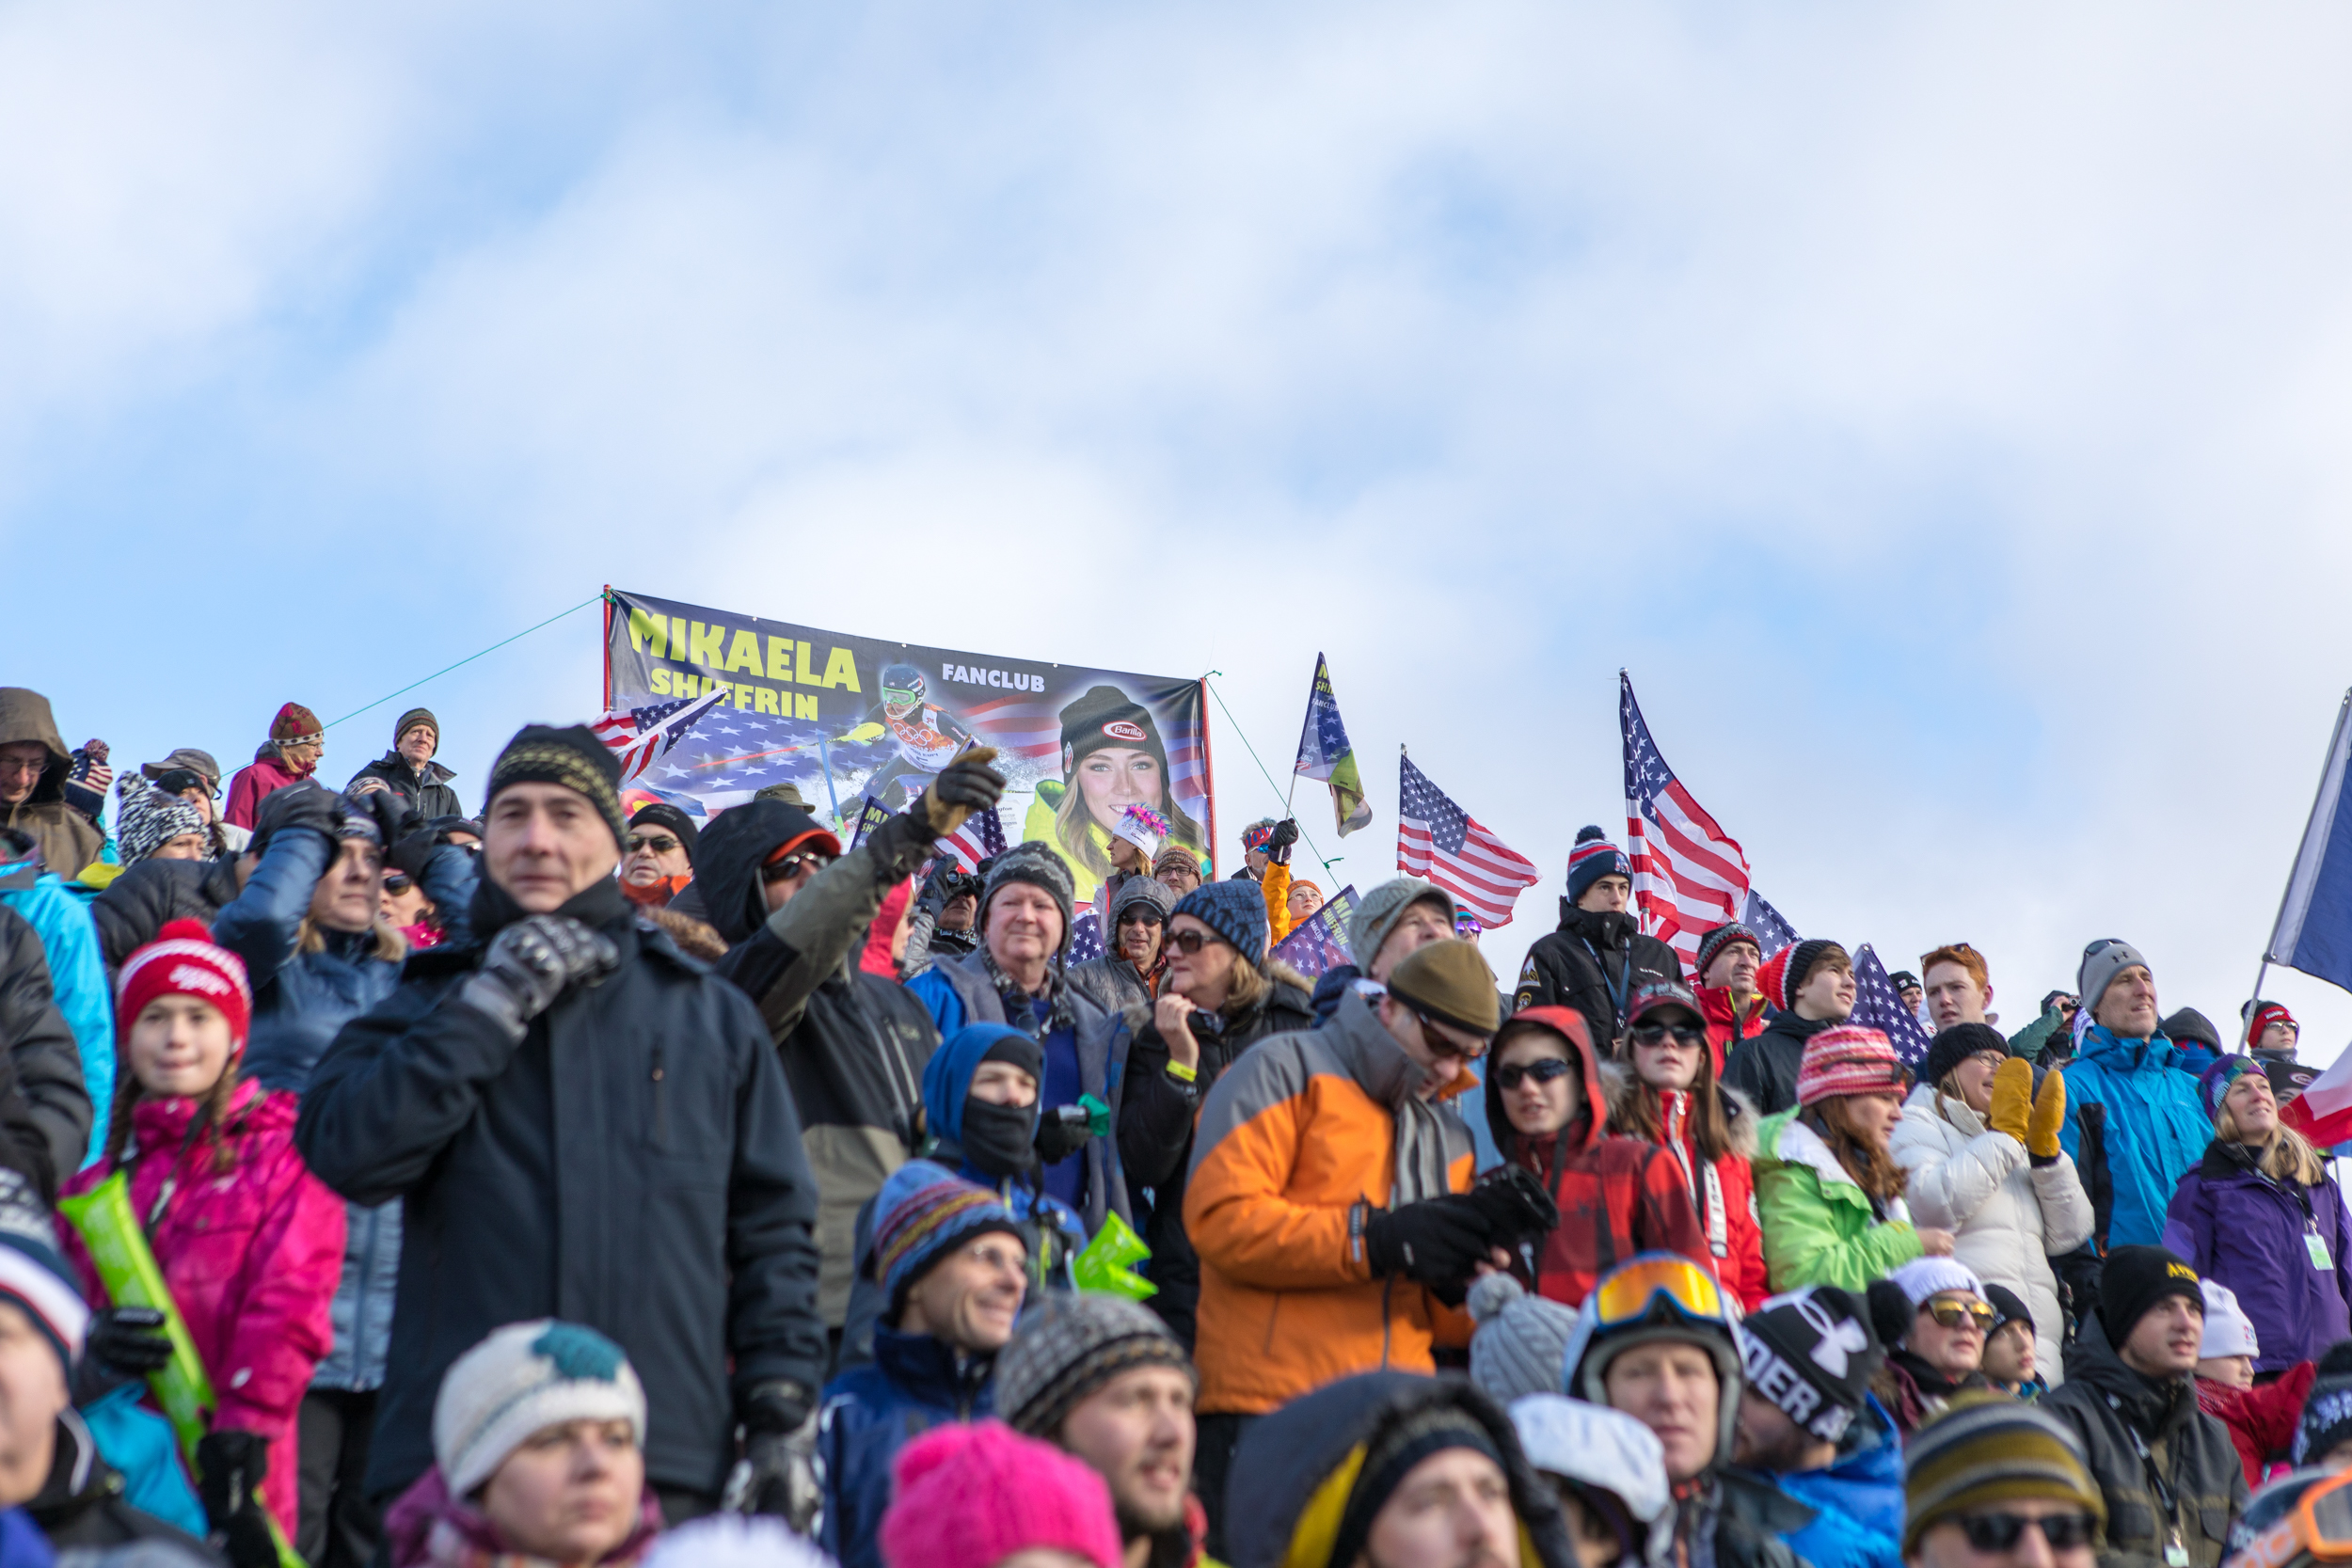 Killington-World-Cup-Shiffrin-Fan-Club.jpg